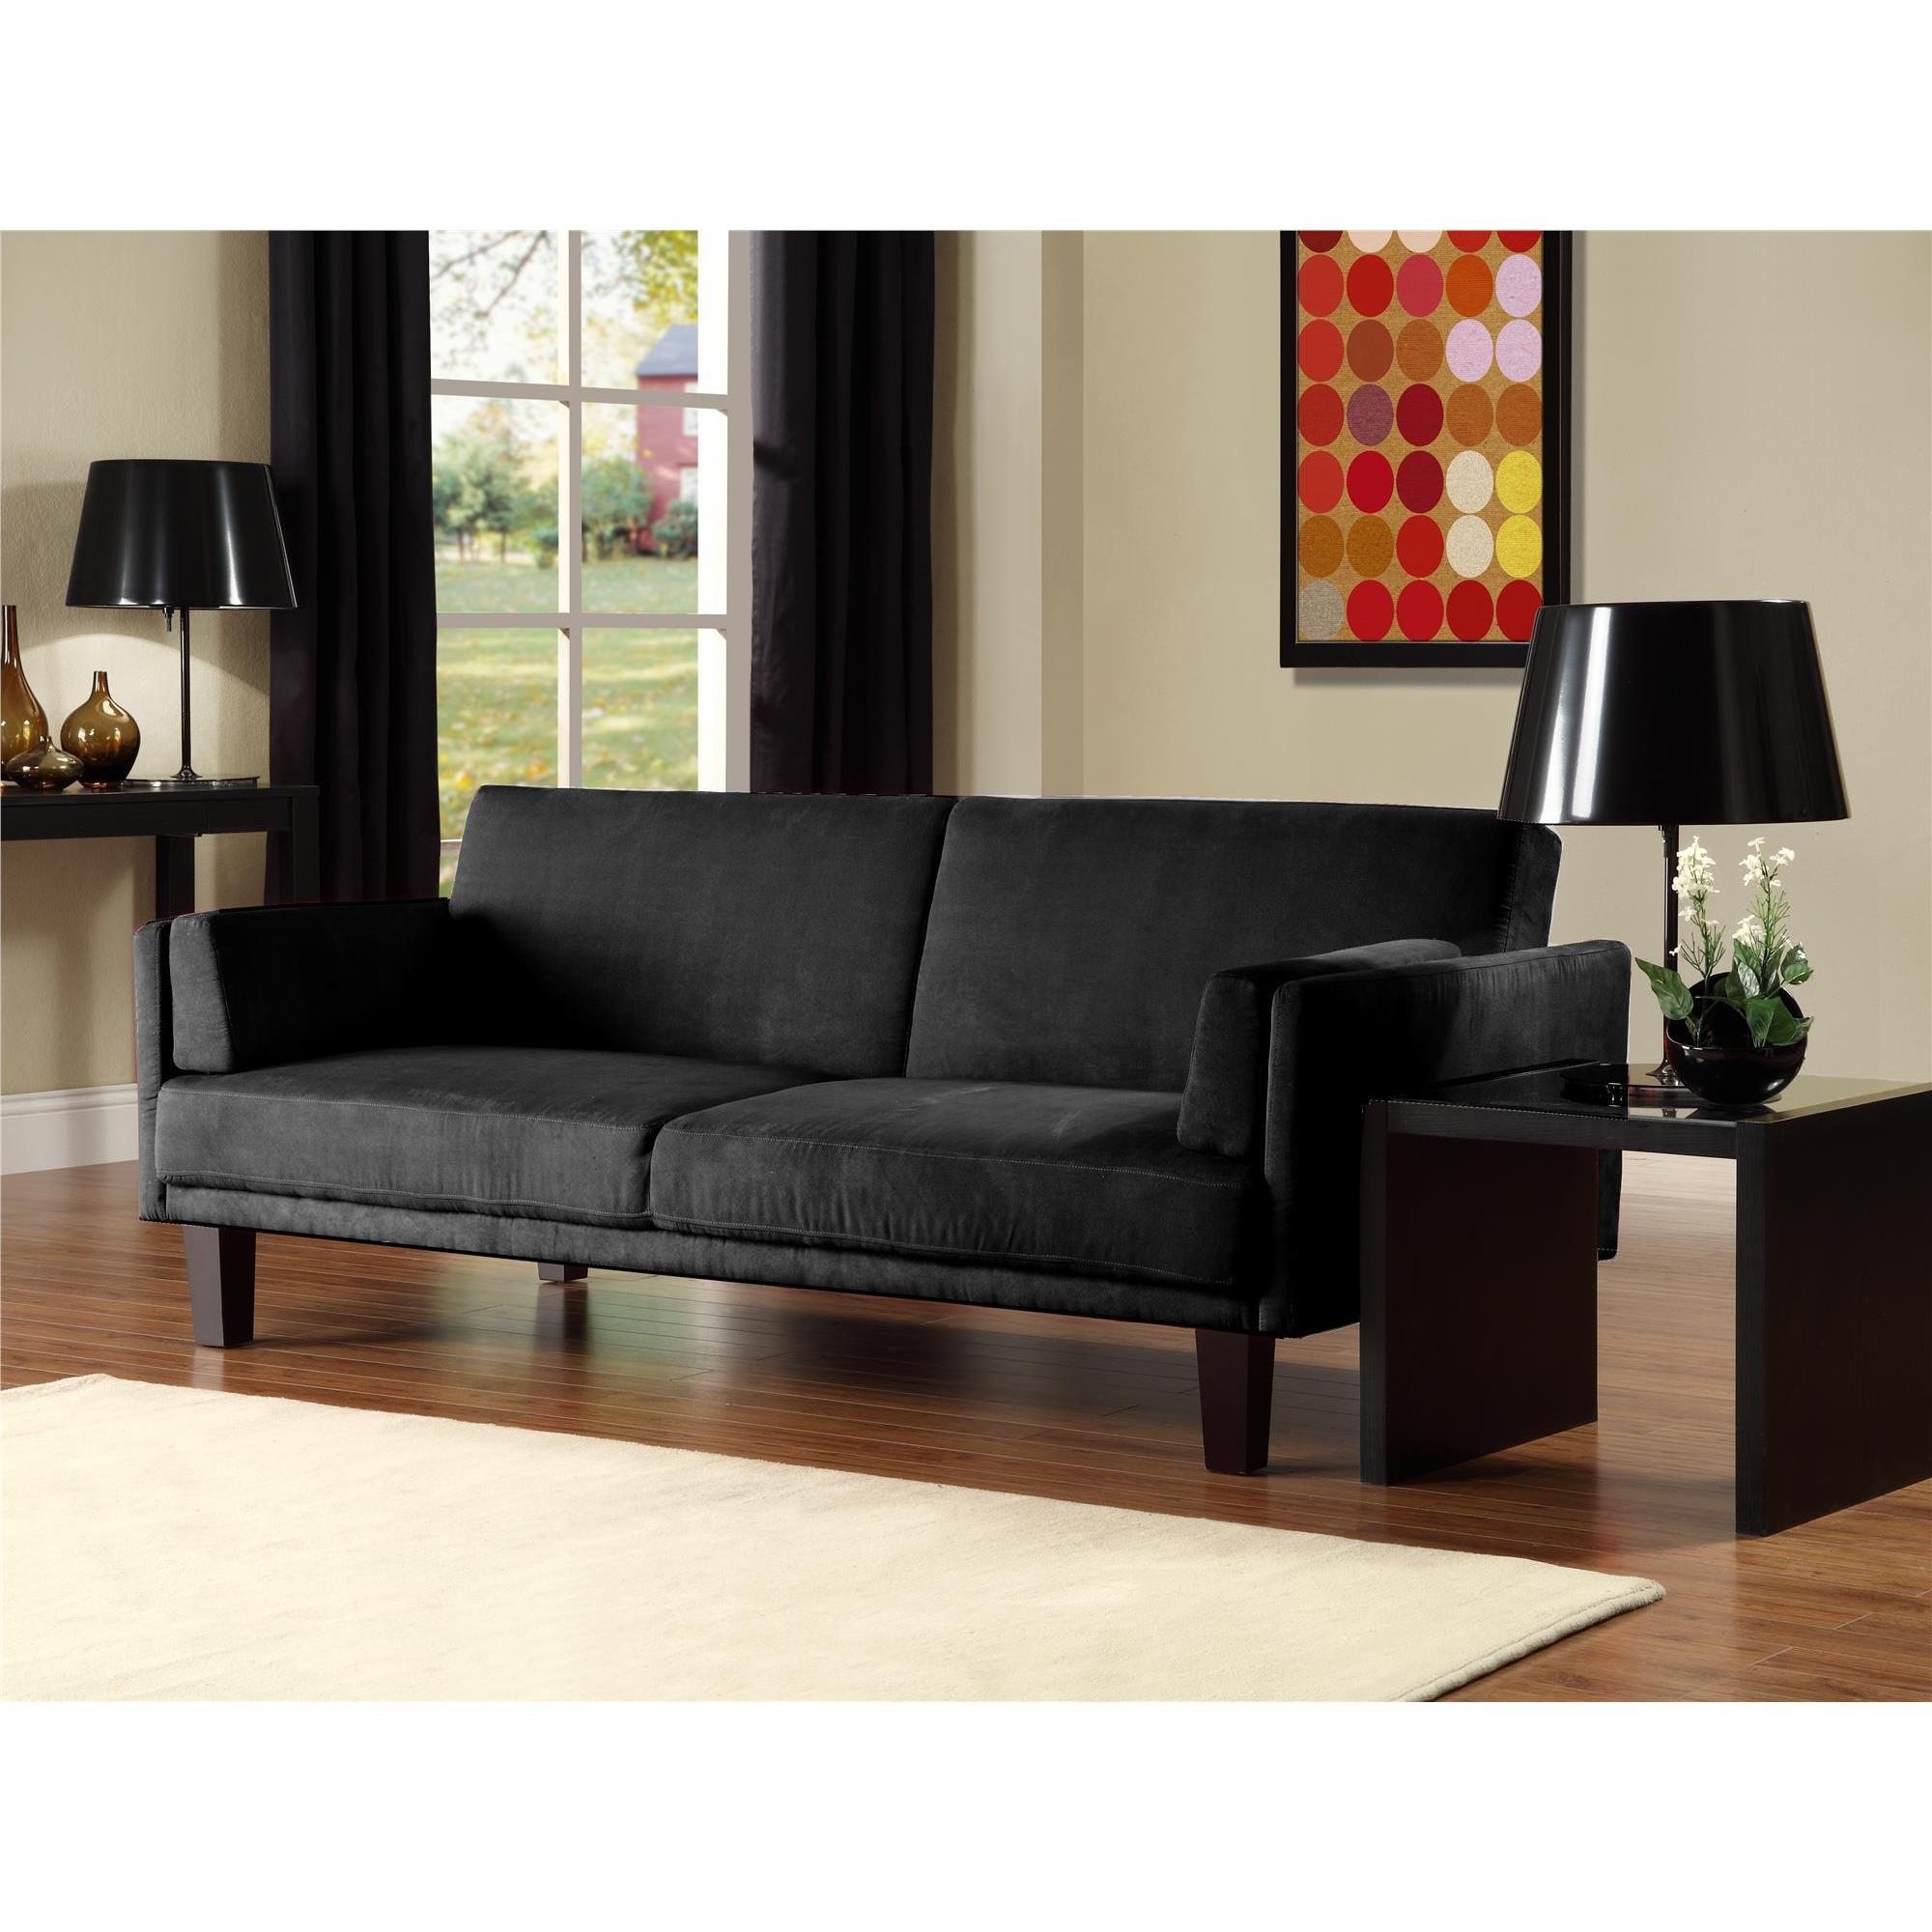 dhp metro futon sofa bed - free shipping today - overstock